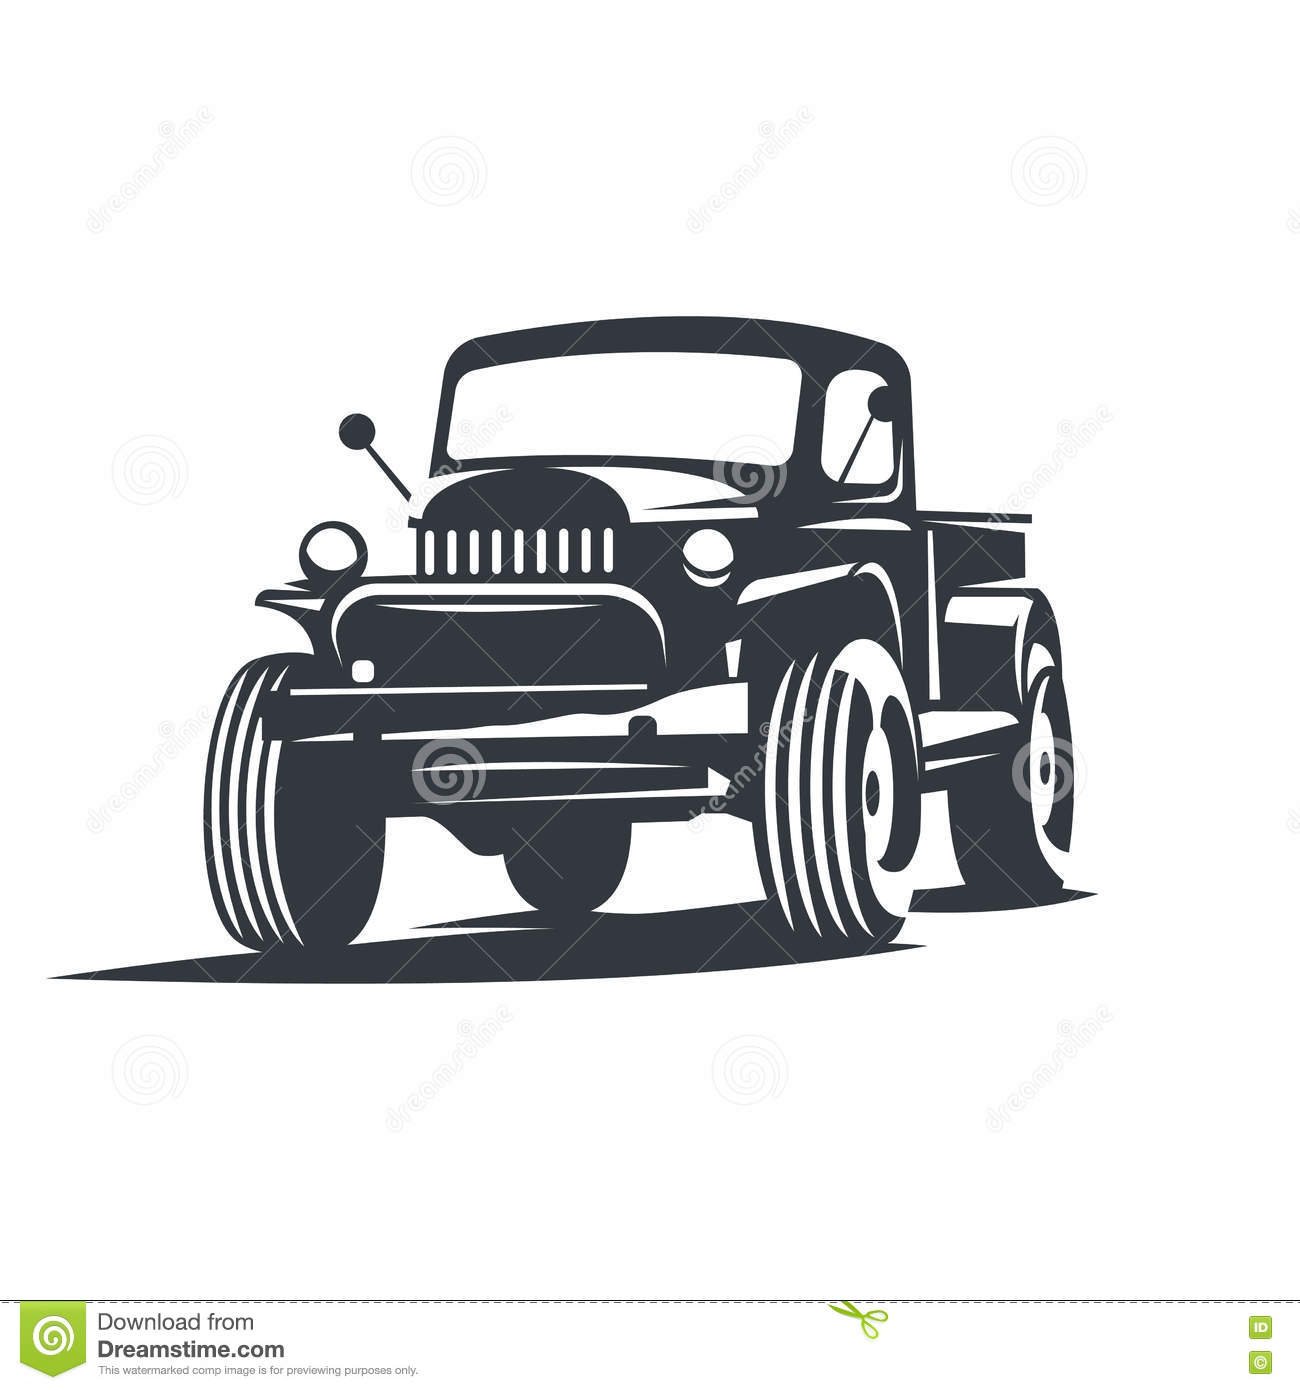 Vector offroad truck stock vector. Illustration of